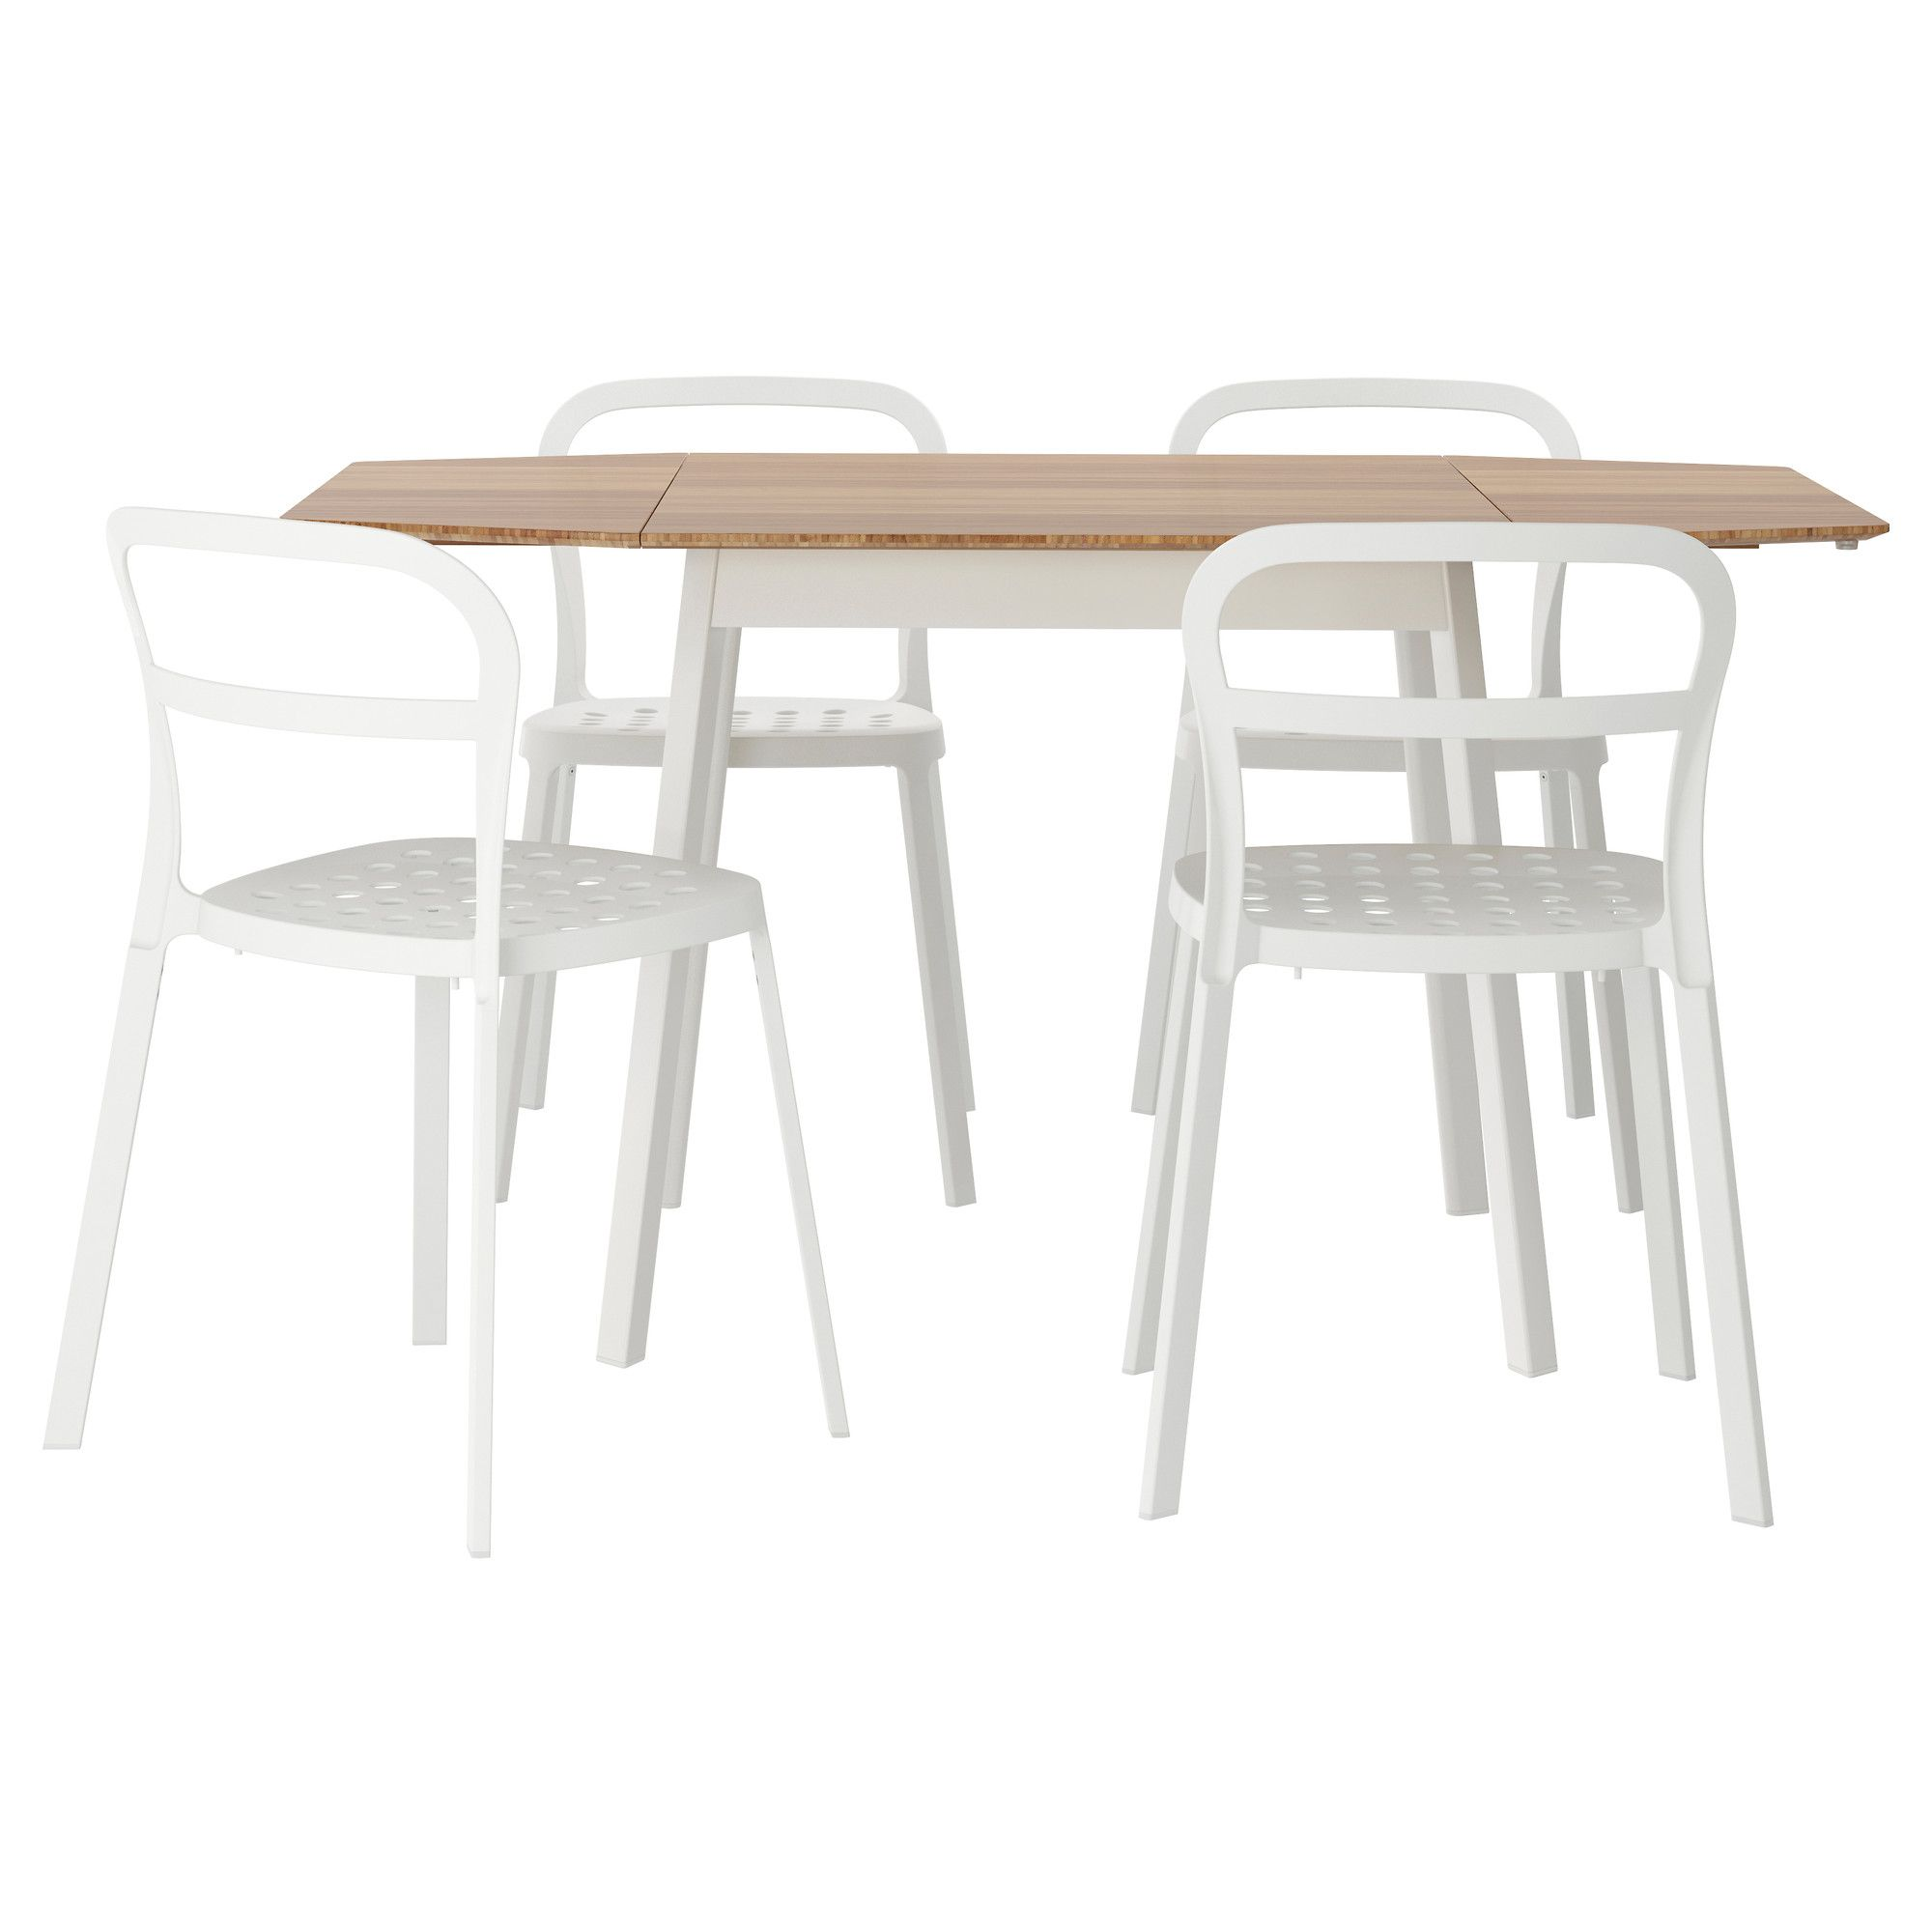 $375 IKEA PS 2012/REIDAR Table and 4 chairs - IKEA | trends ...